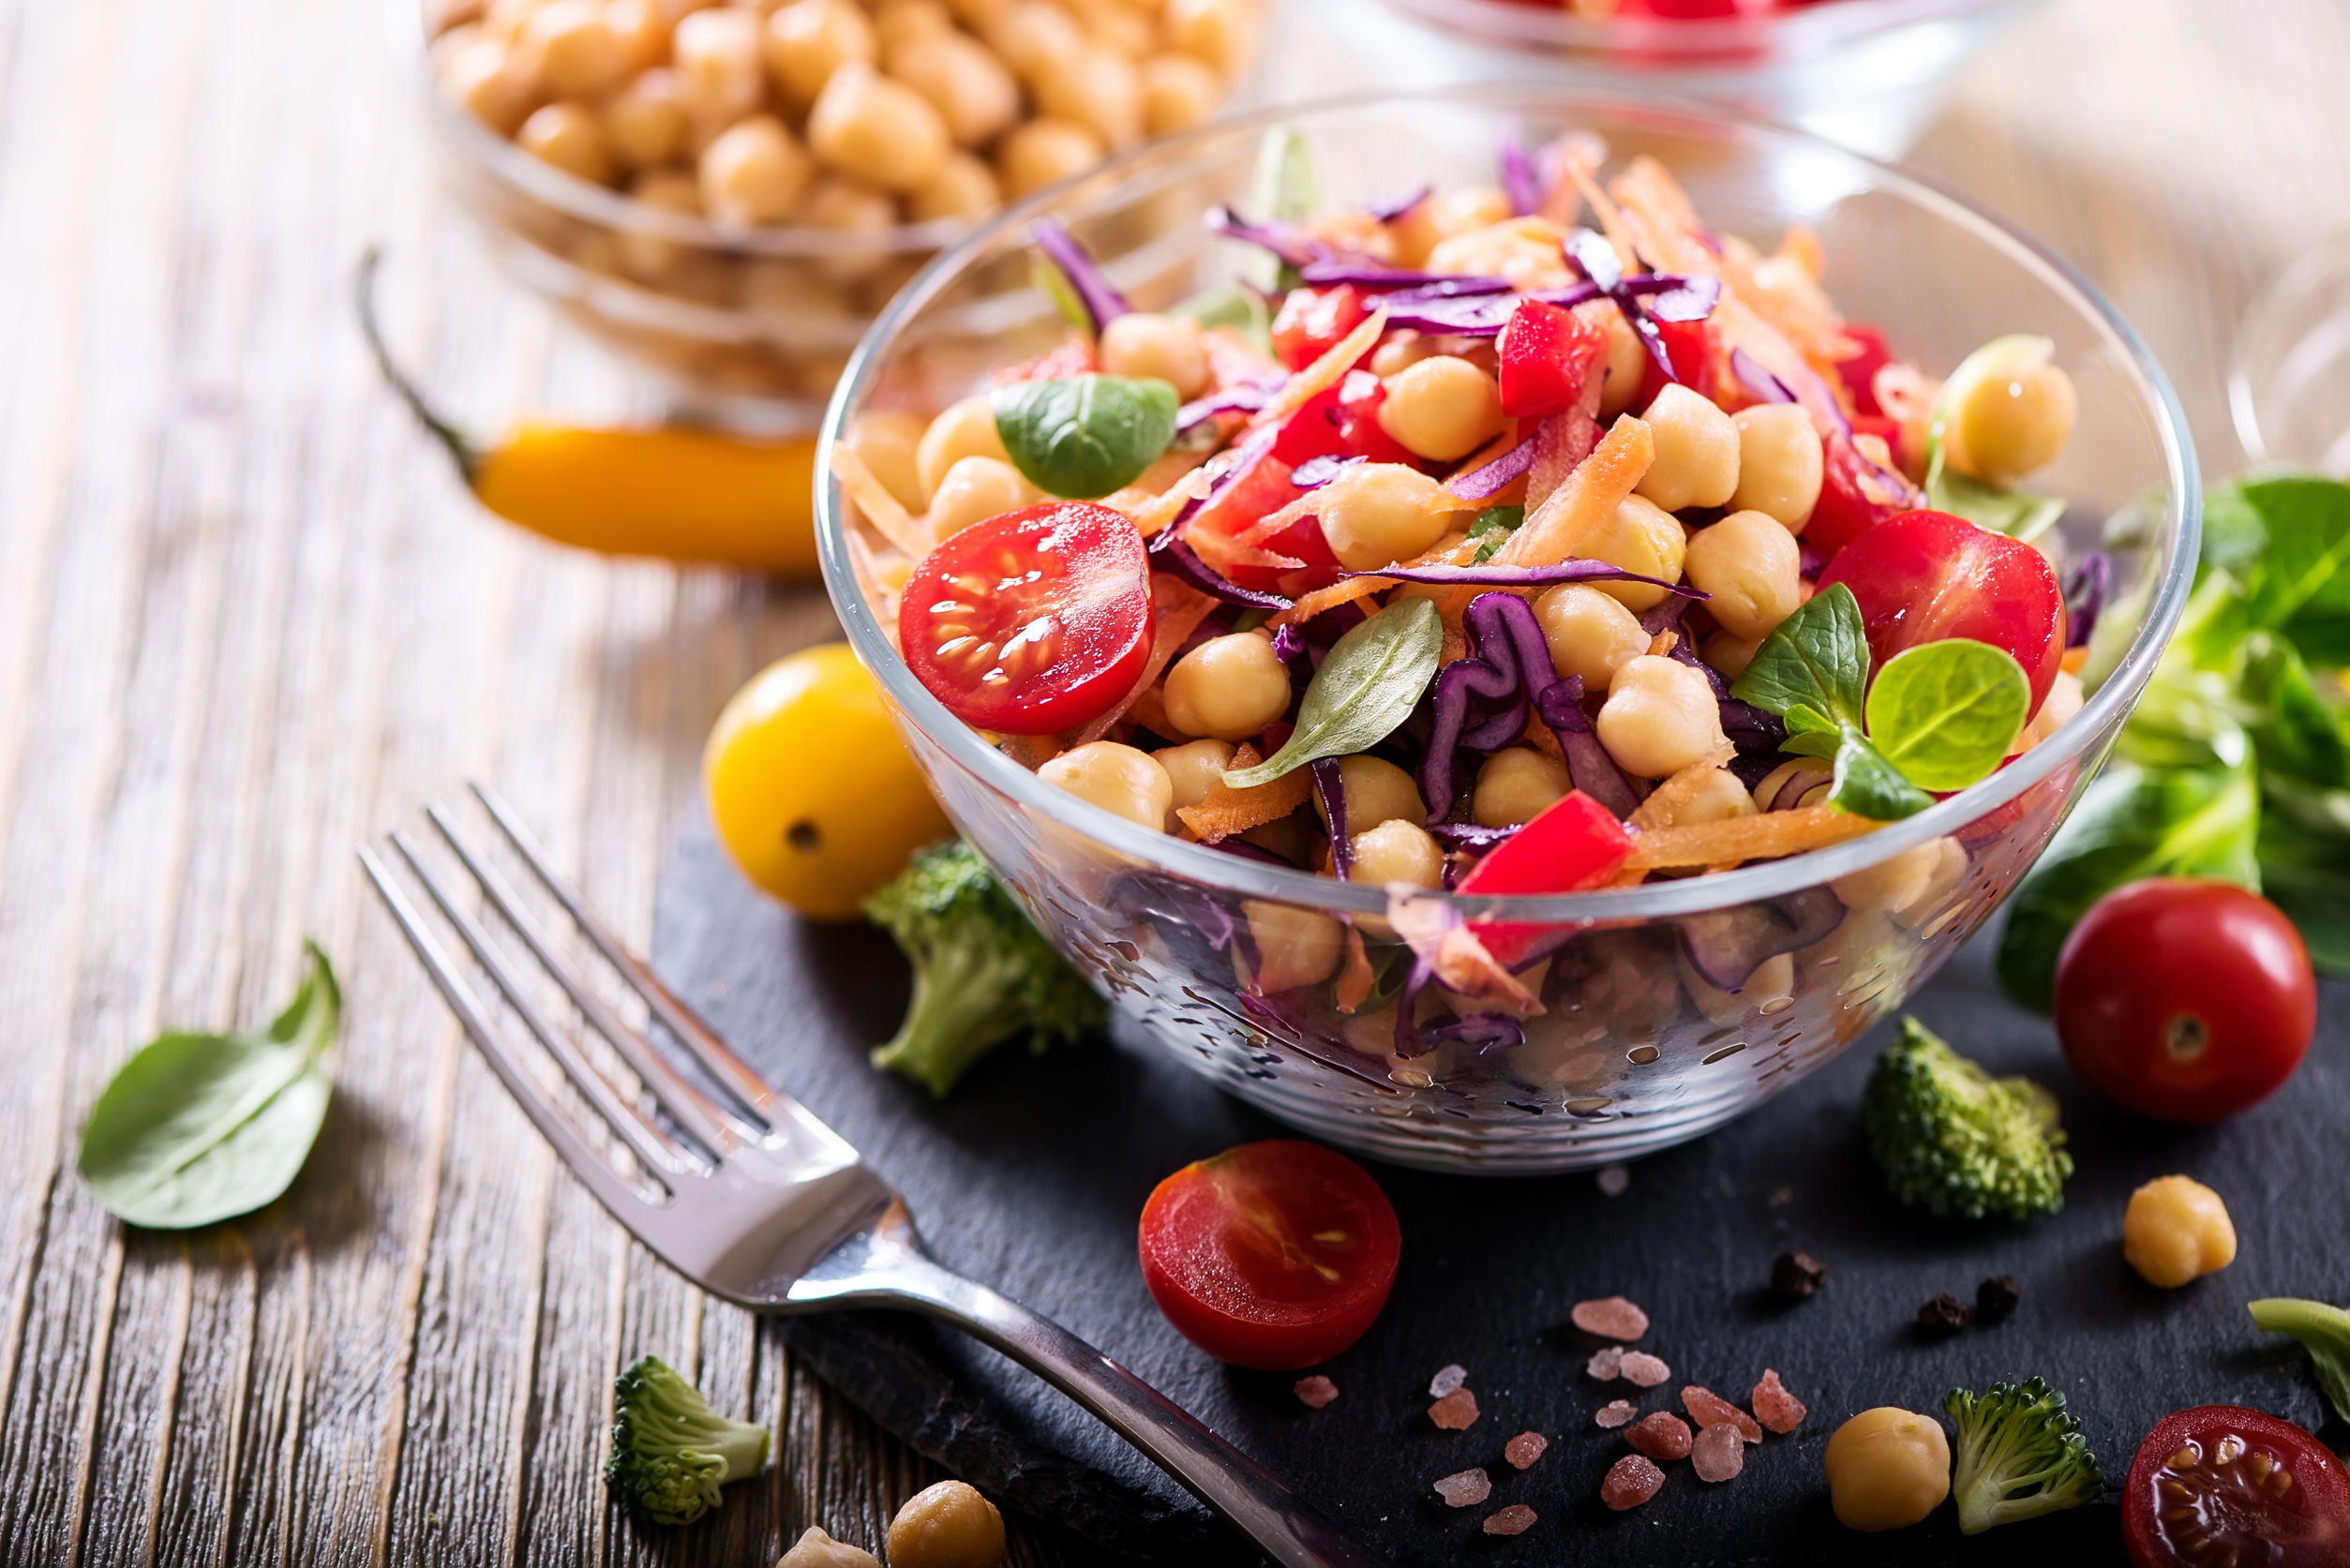 How to Build Muscle on a Vegan Diet